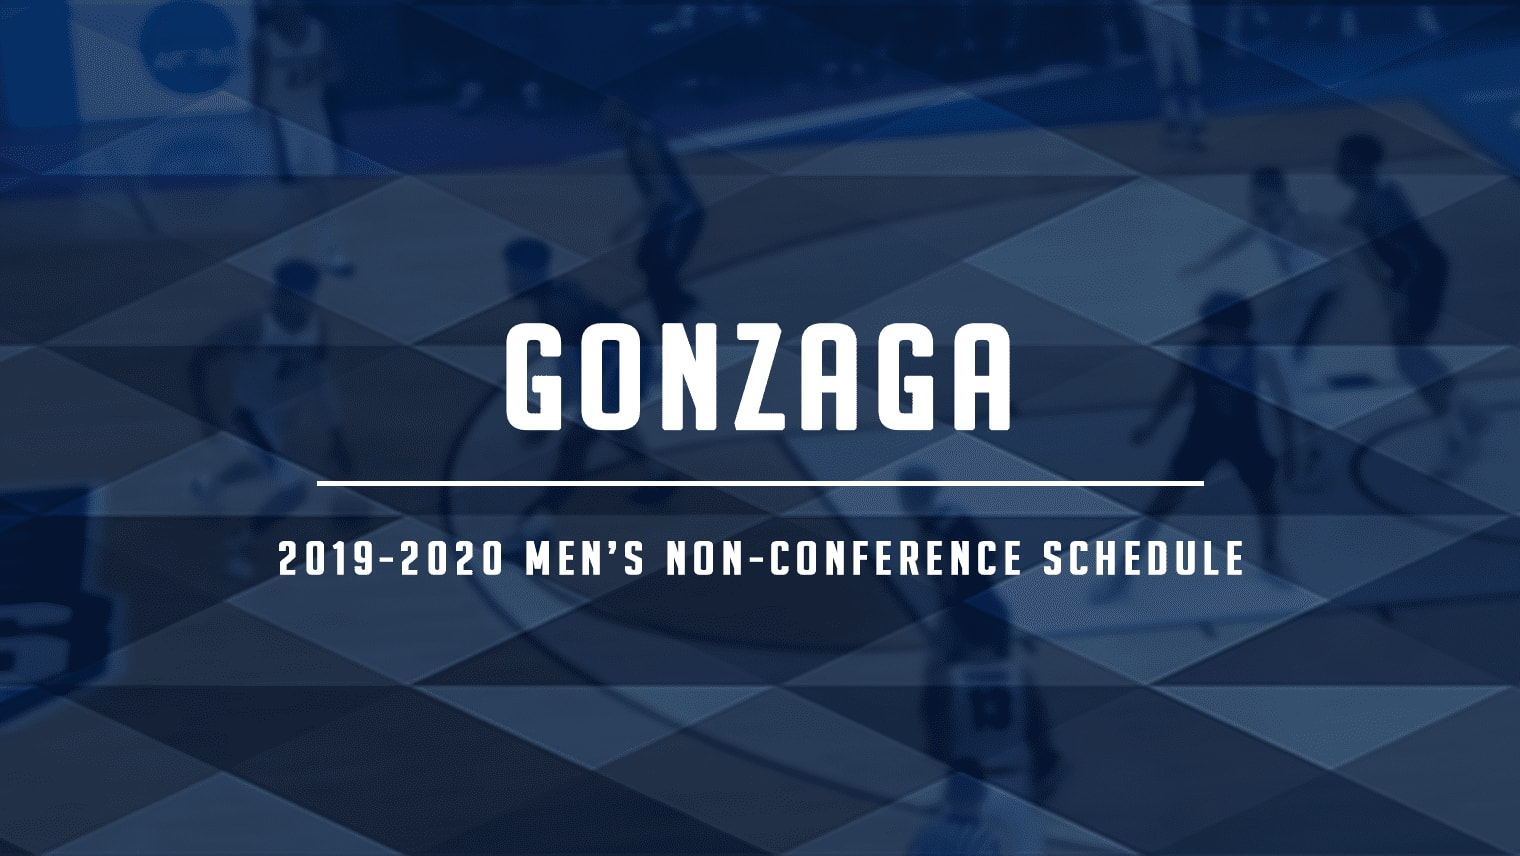 Gonzaga yet again has a very difficult non-conference schedule to look forward to, including dates with North Carolina, Arizona, Washington and more.